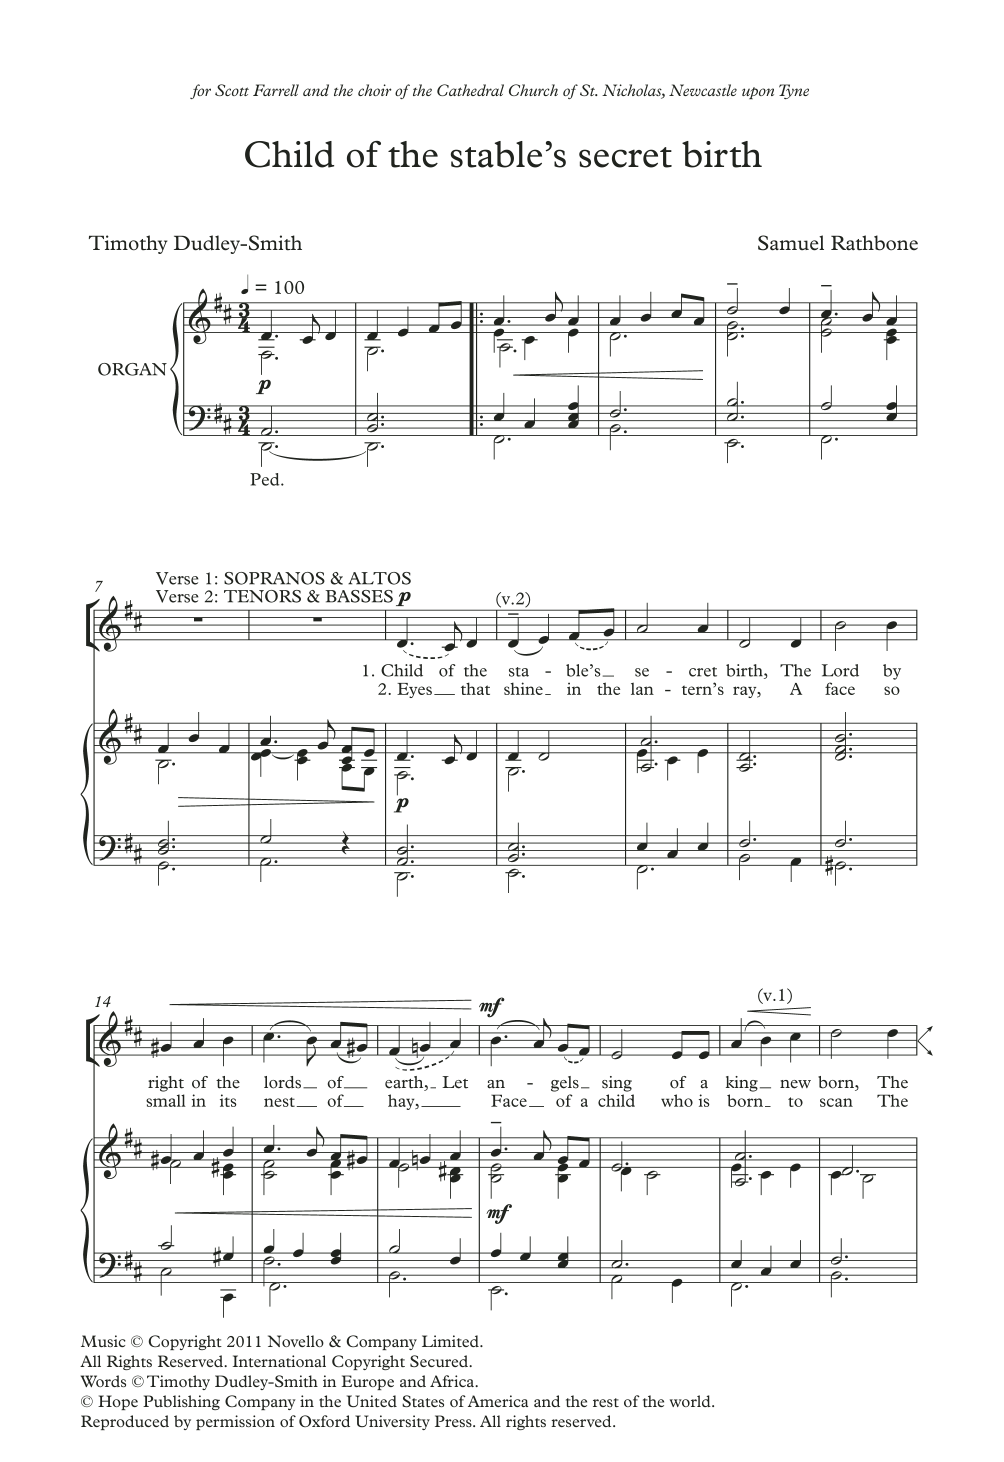 Child Of The Stable's Secret Birth Sheet Music